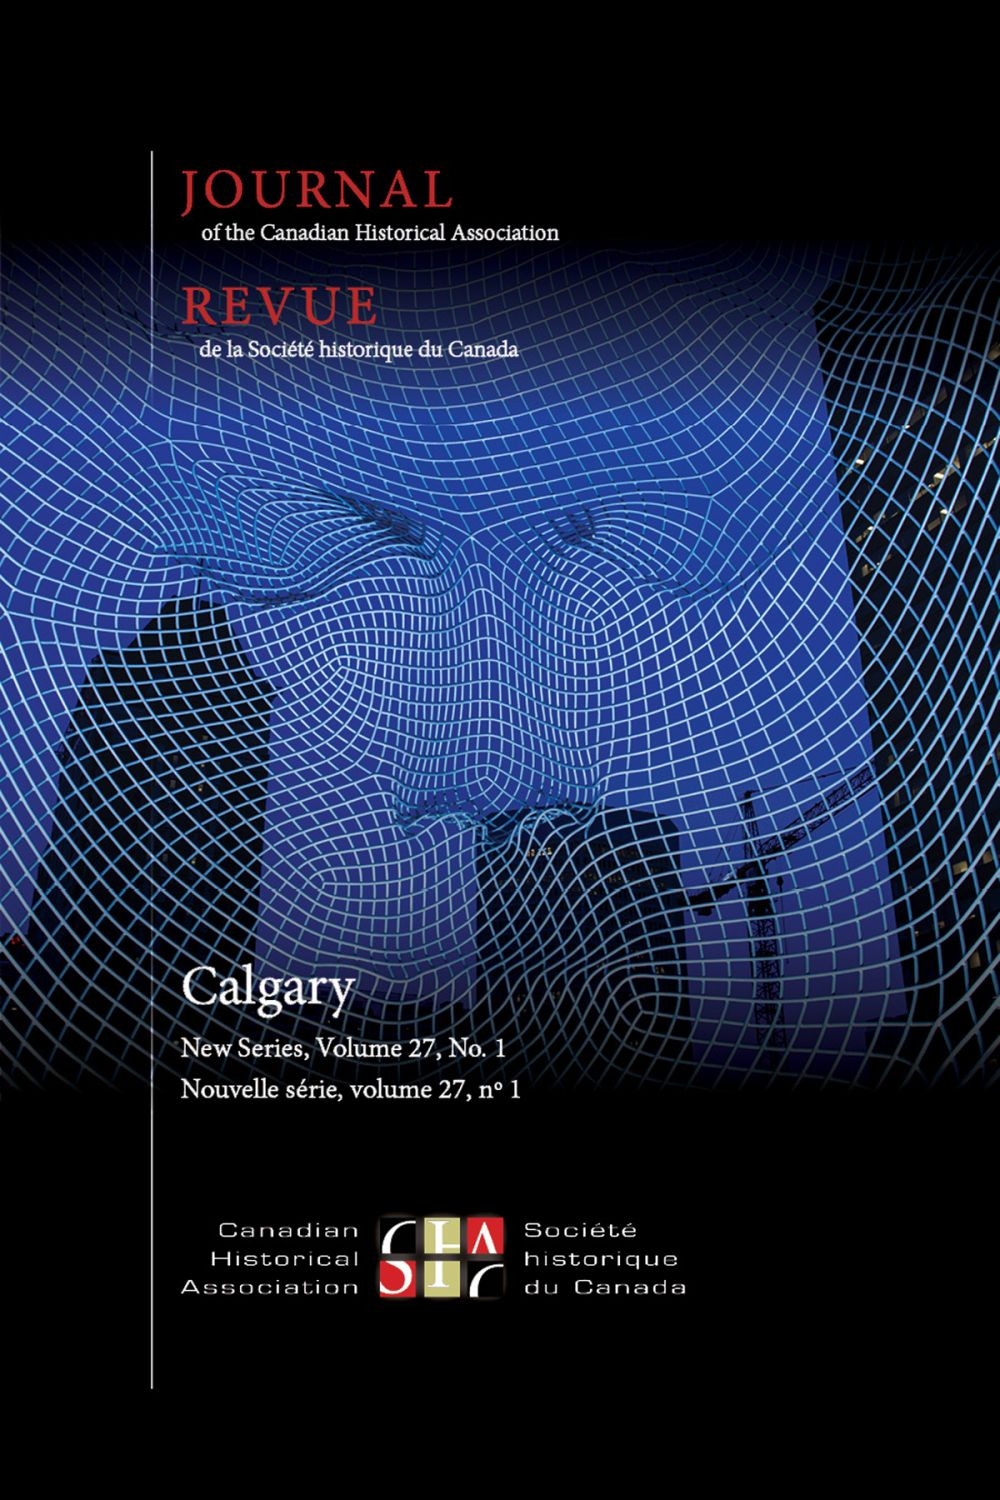 Journal of the Canadian Historical Association. Vol. 27 No. 1,  2016